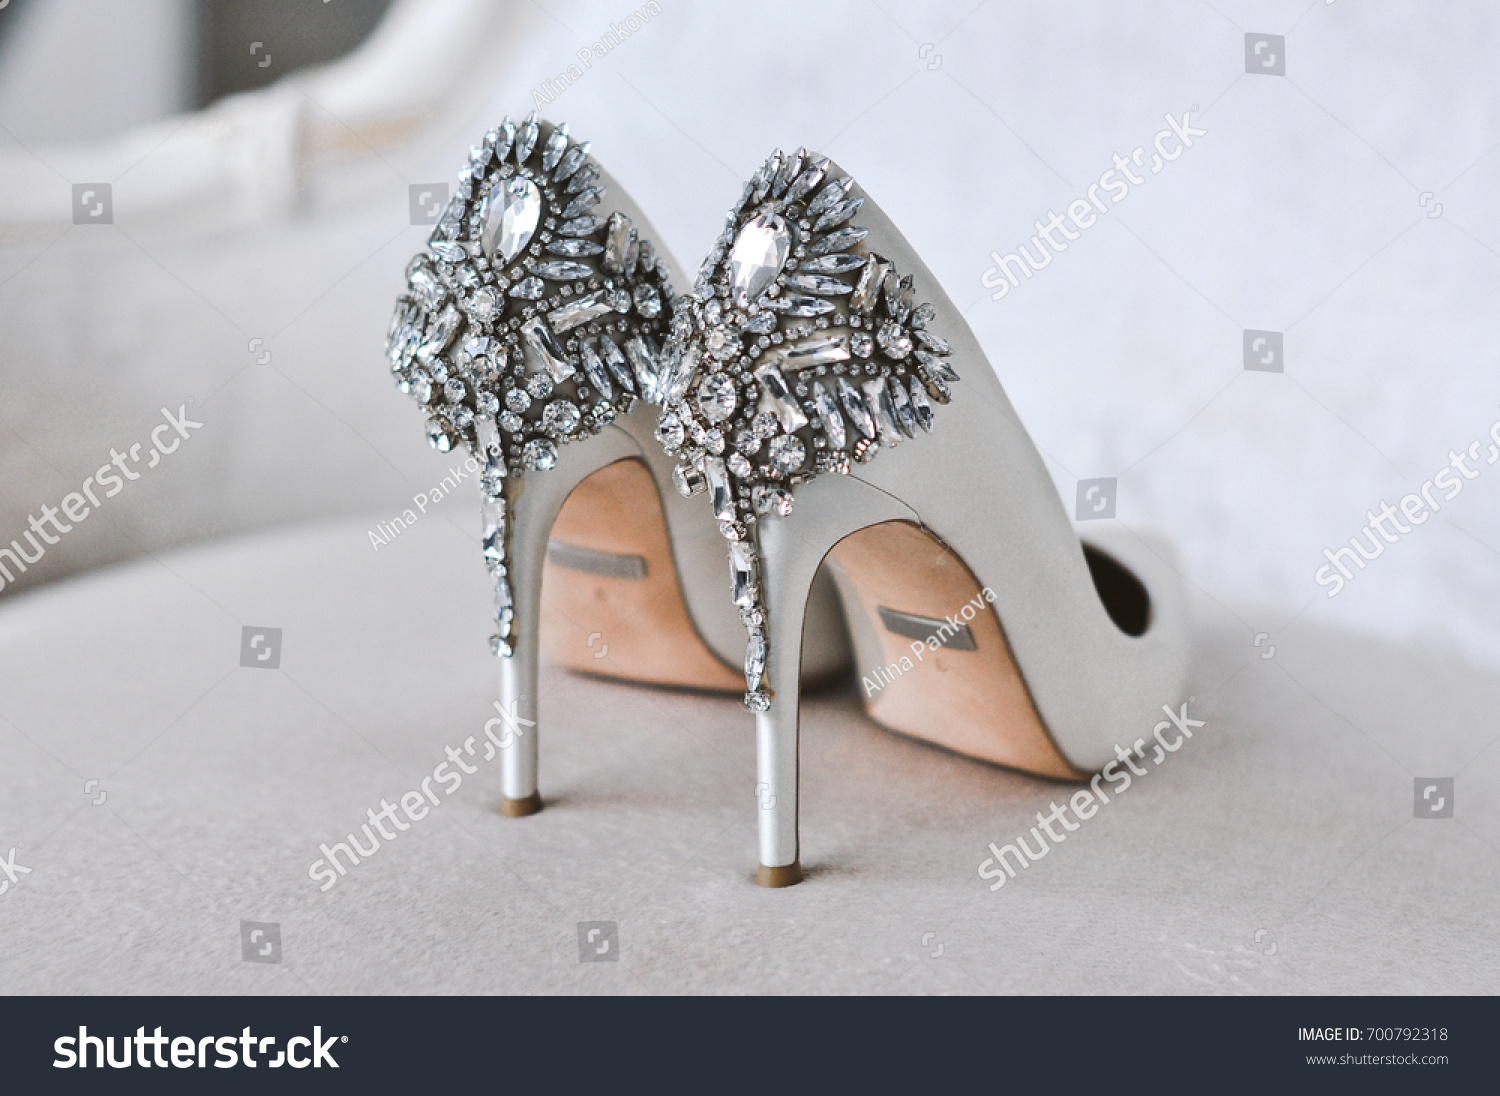 Pair of wedding shoes #700792318